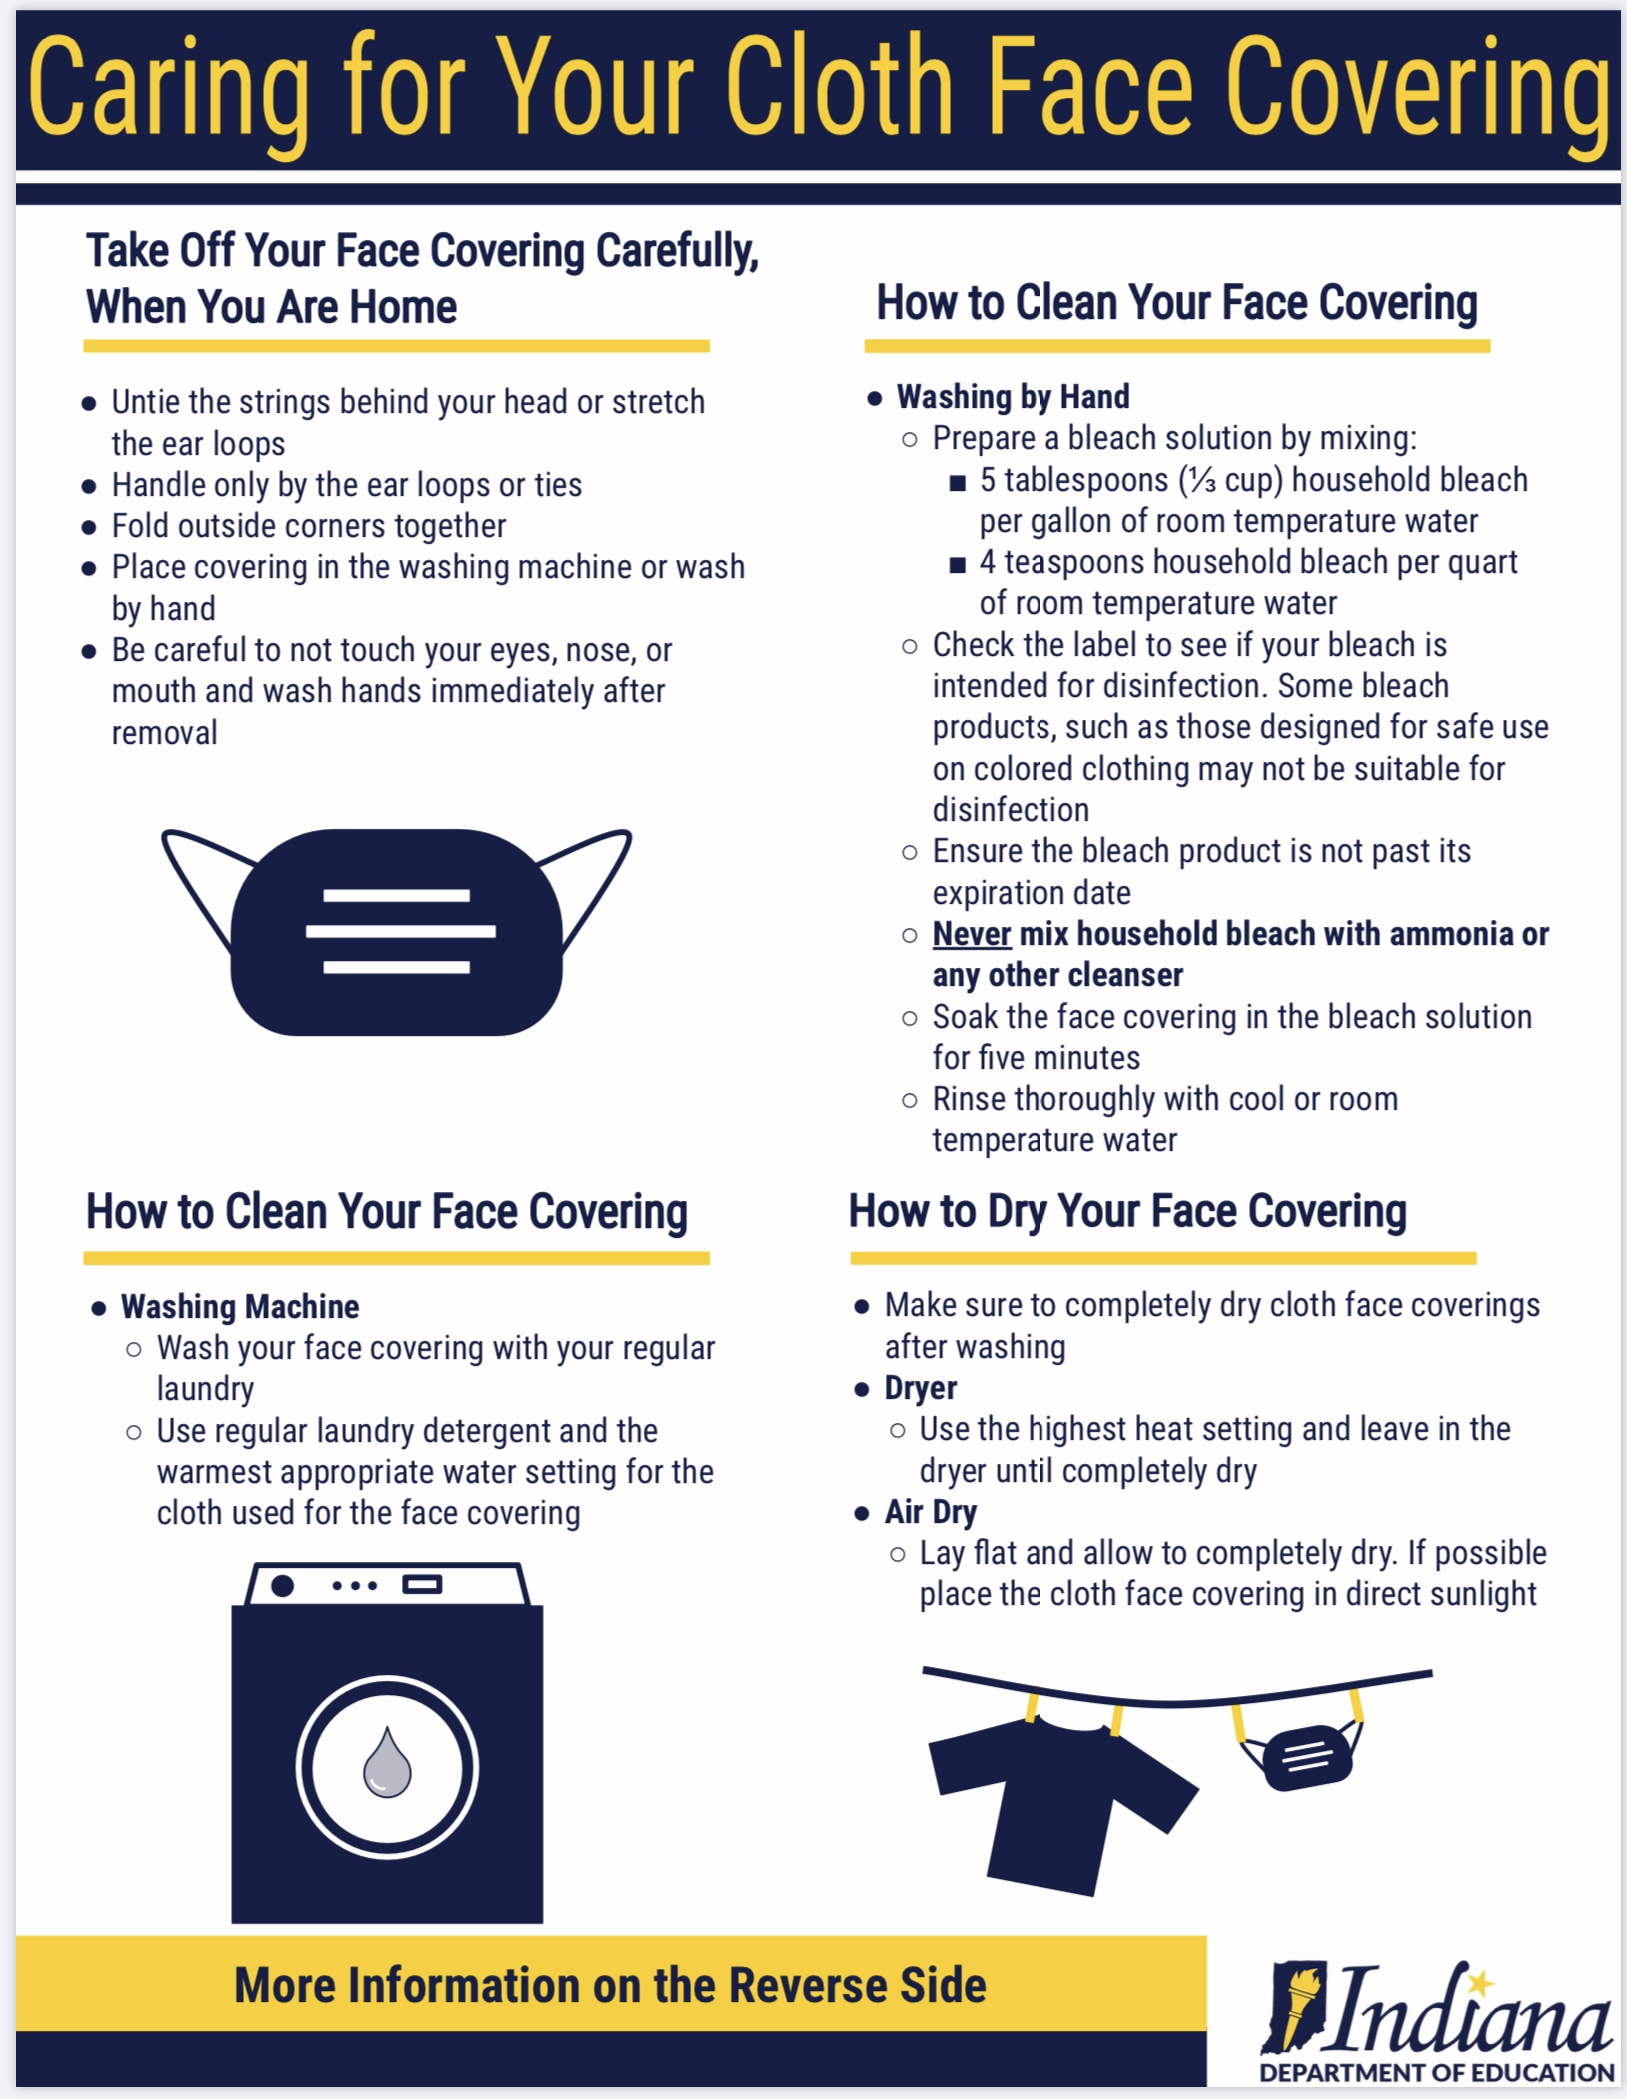 Caring for your cloth face covering